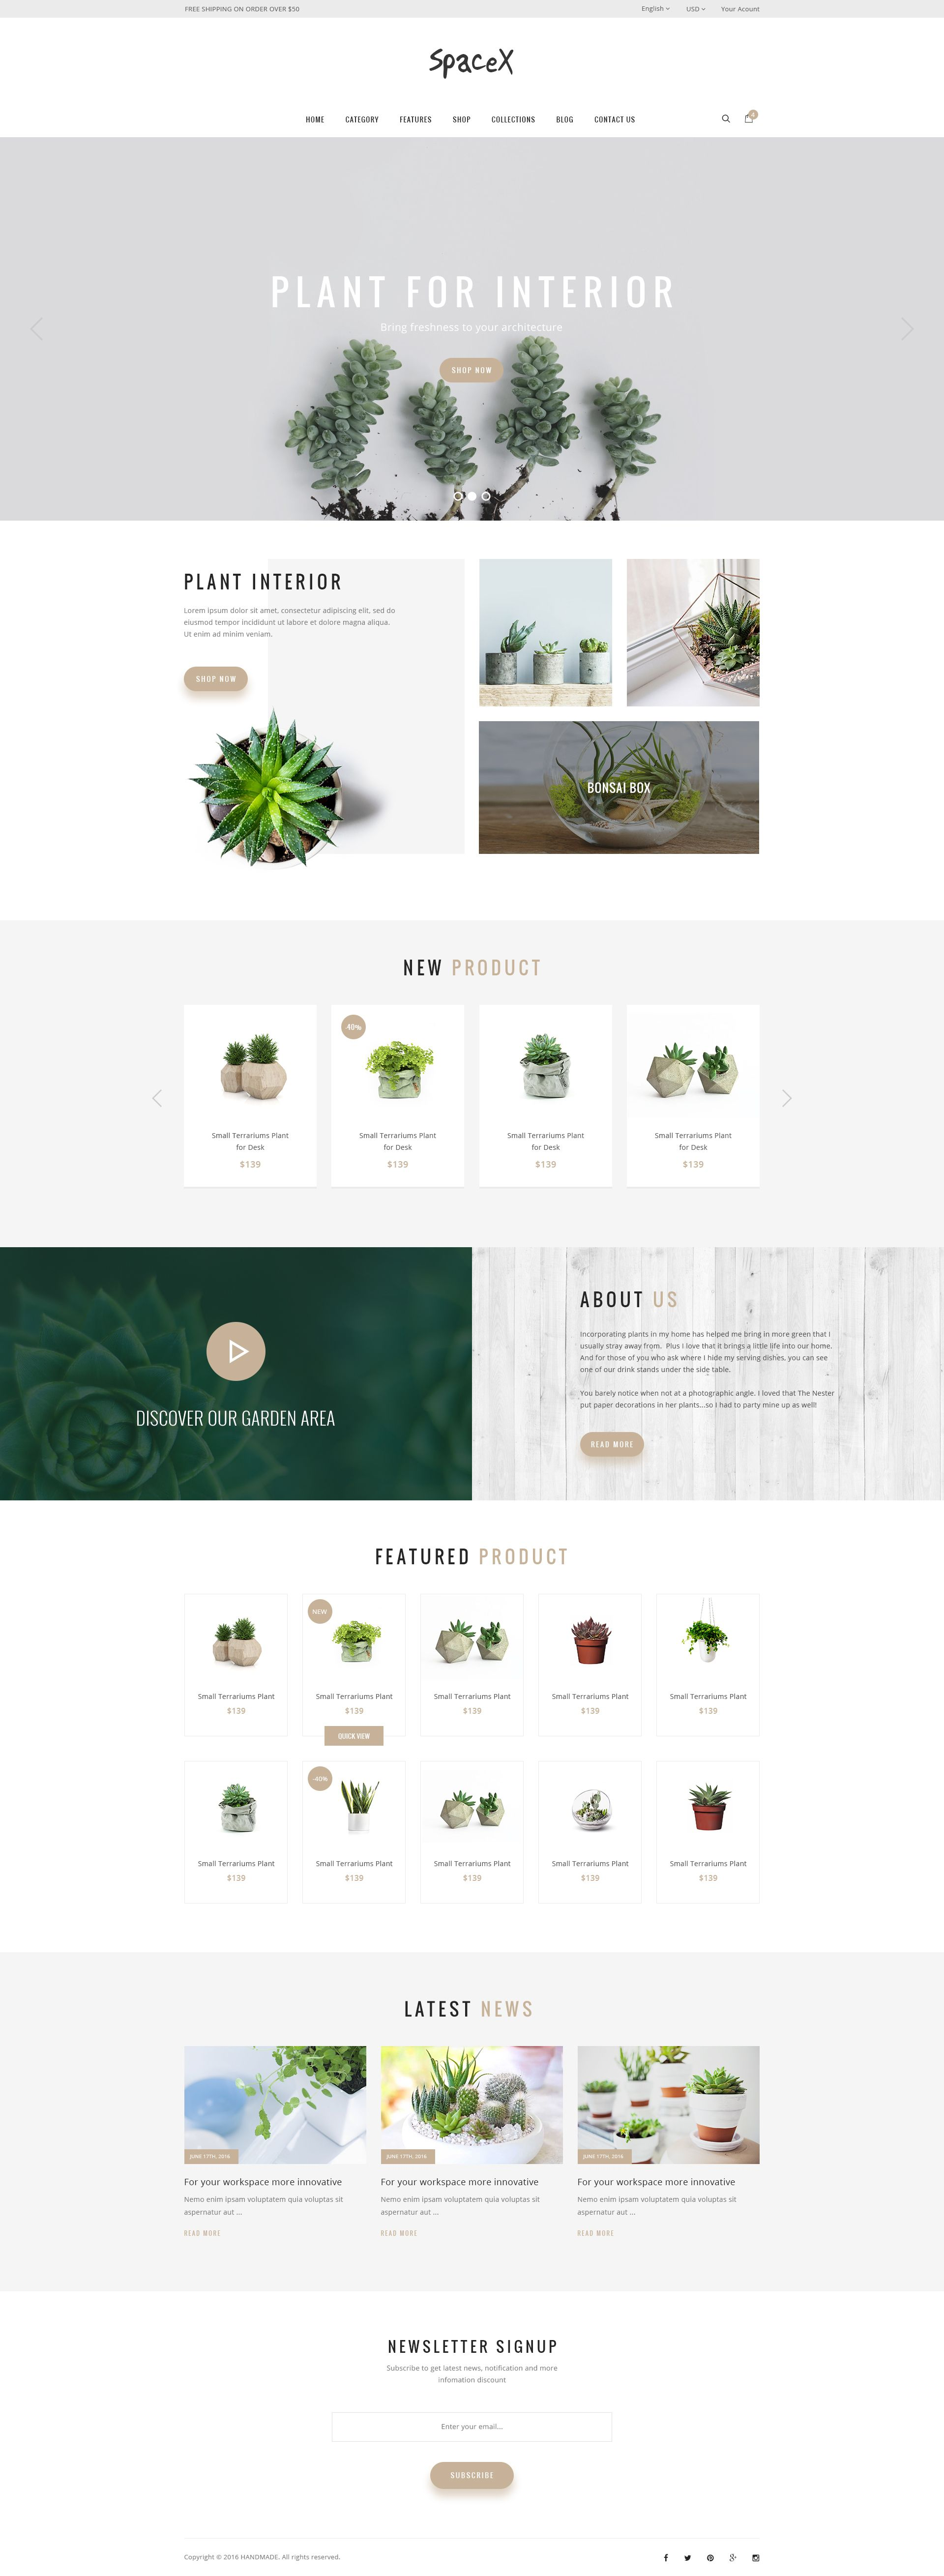 SpaceX Architecture and Interior Design Agency PSD Template Design